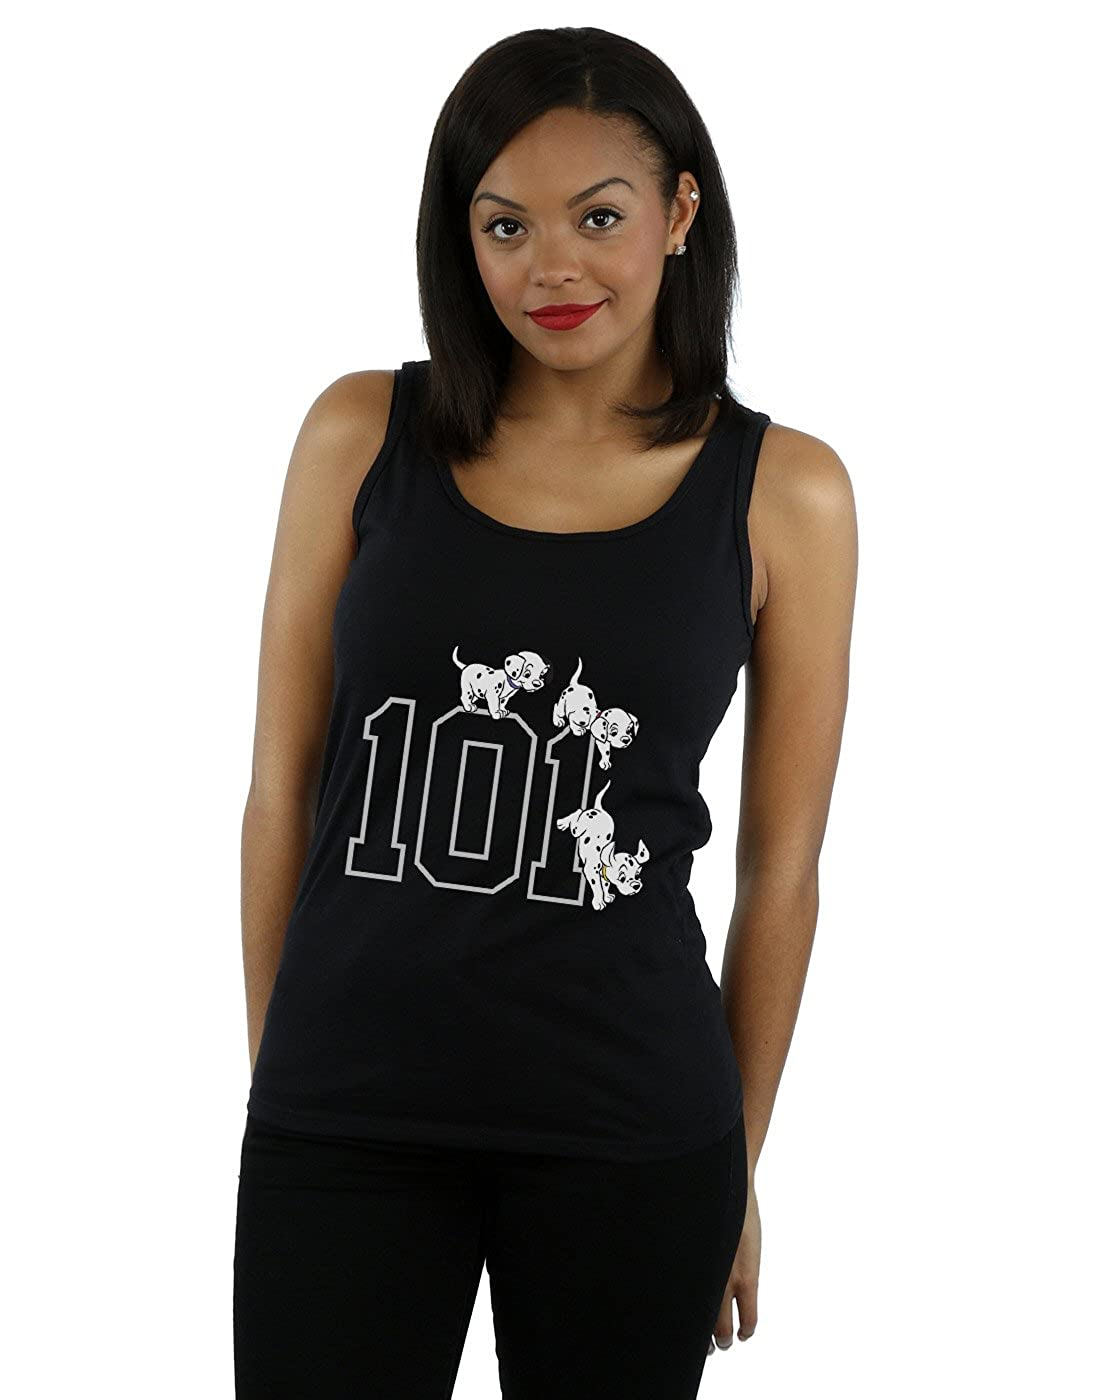 Disney Women's 101 Dalmatians 101 Doggies Tank Top Absolute Cult